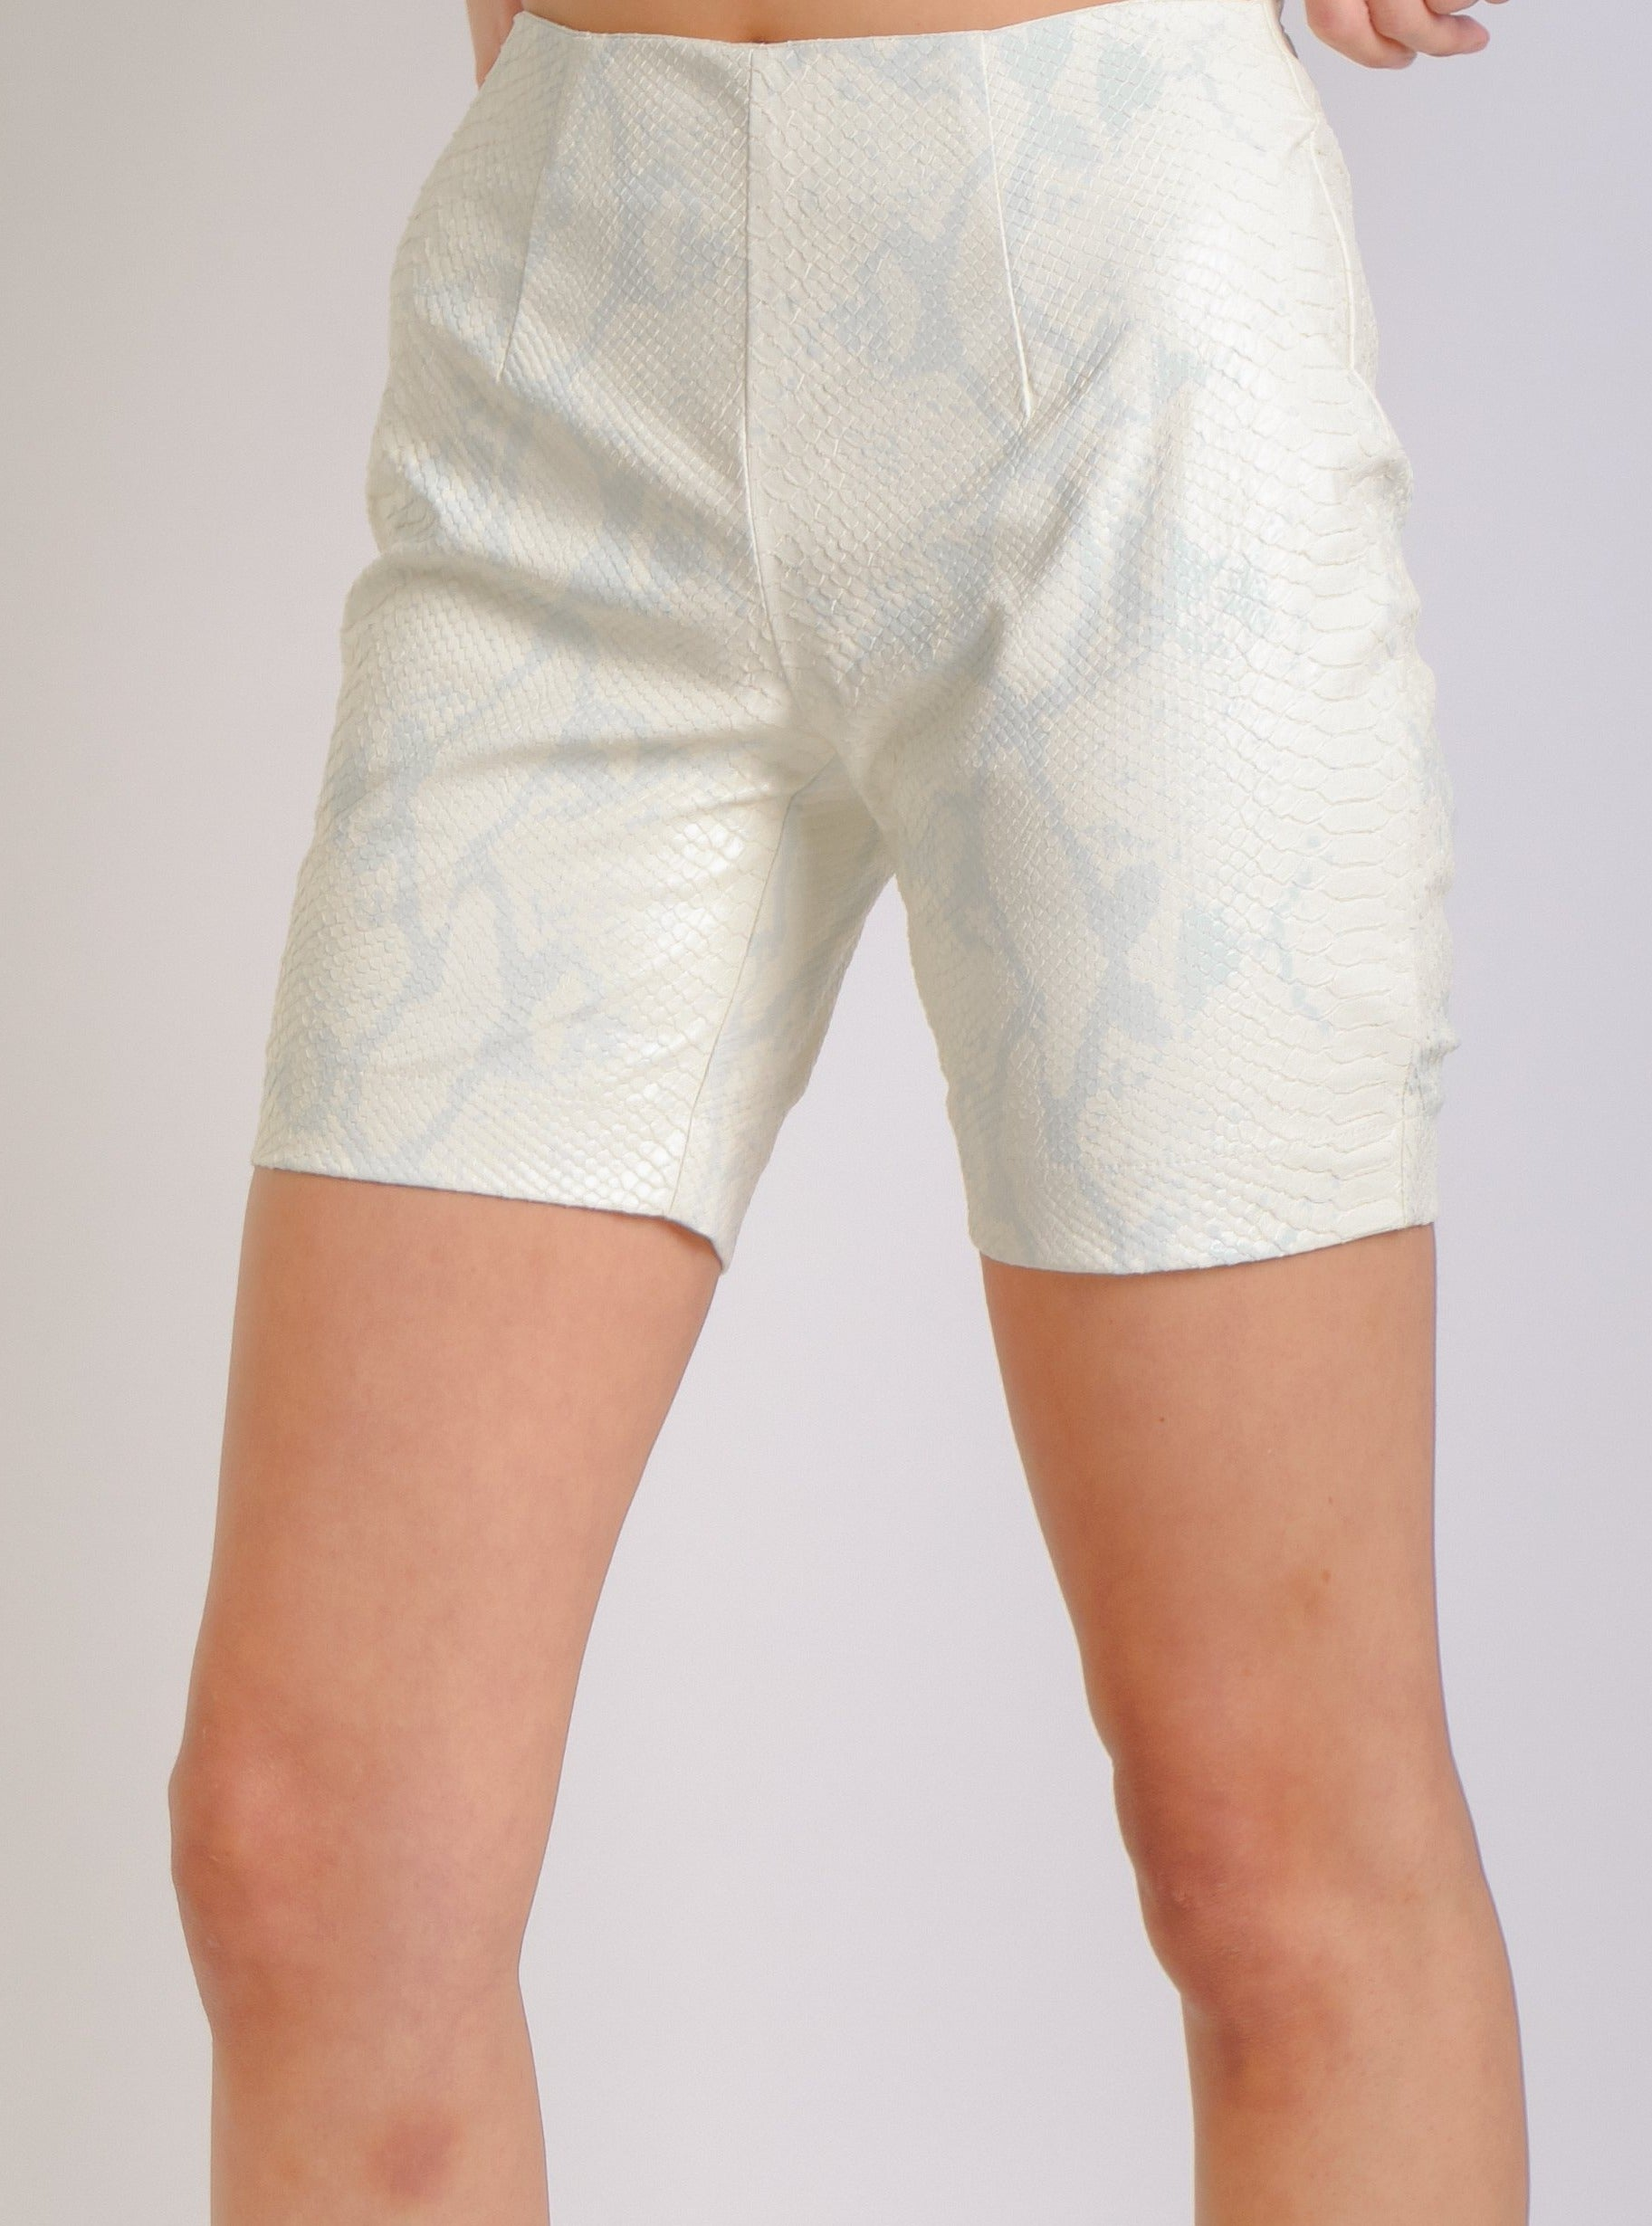 PHTHON DETAIL SHORTS